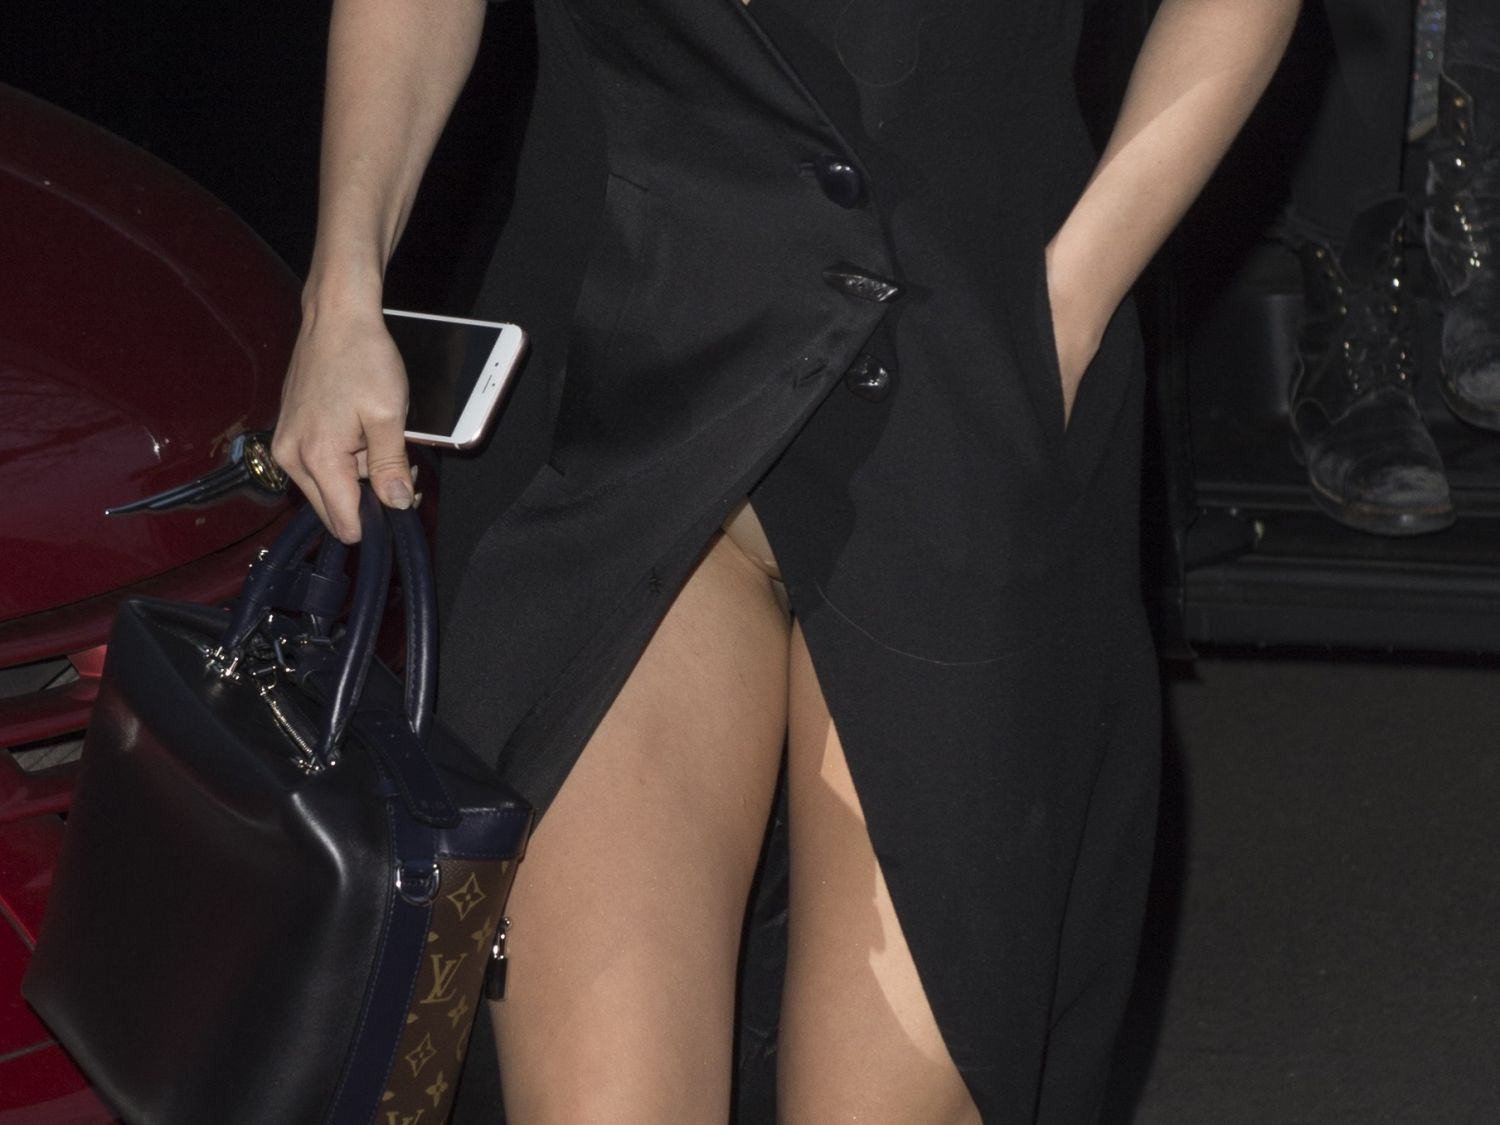 Selena Gomez Upskirt and Leggy Candids During Paris Fashion Week